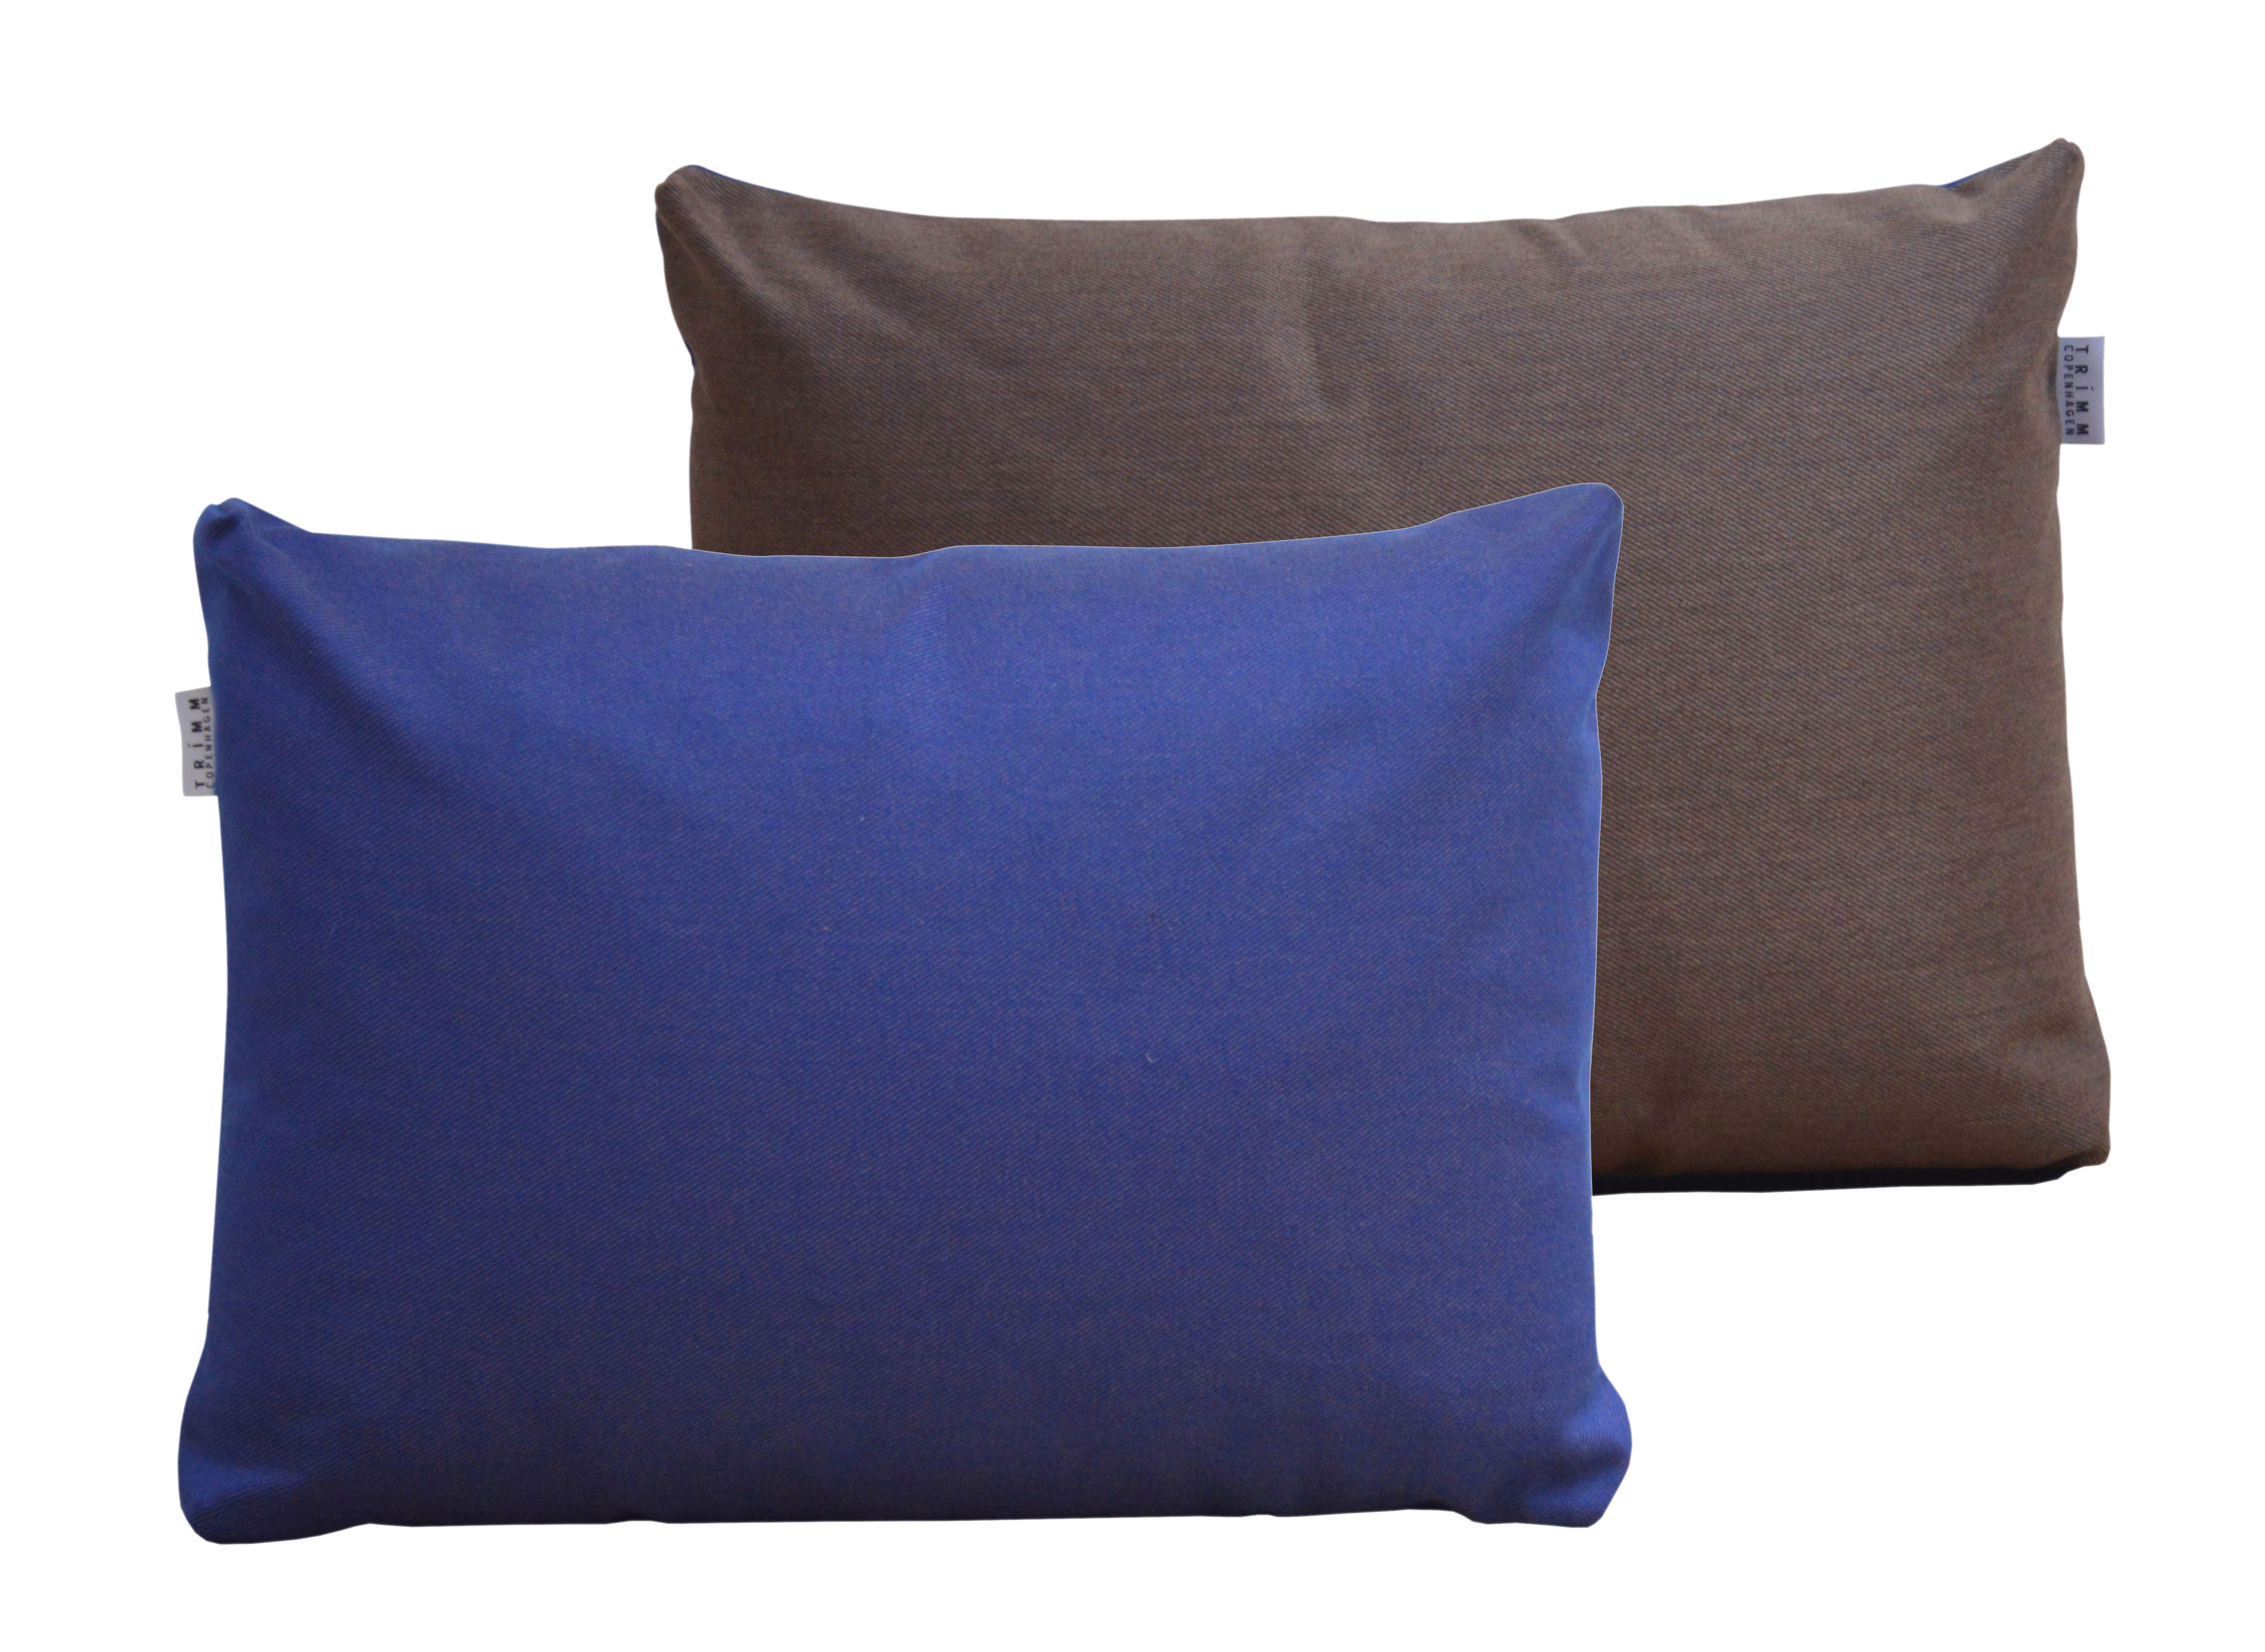 coussin duo 60 x 45 cm bleu nuit chocolat trimm copenhagen. Black Bedroom Furniture Sets. Home Design Ideas